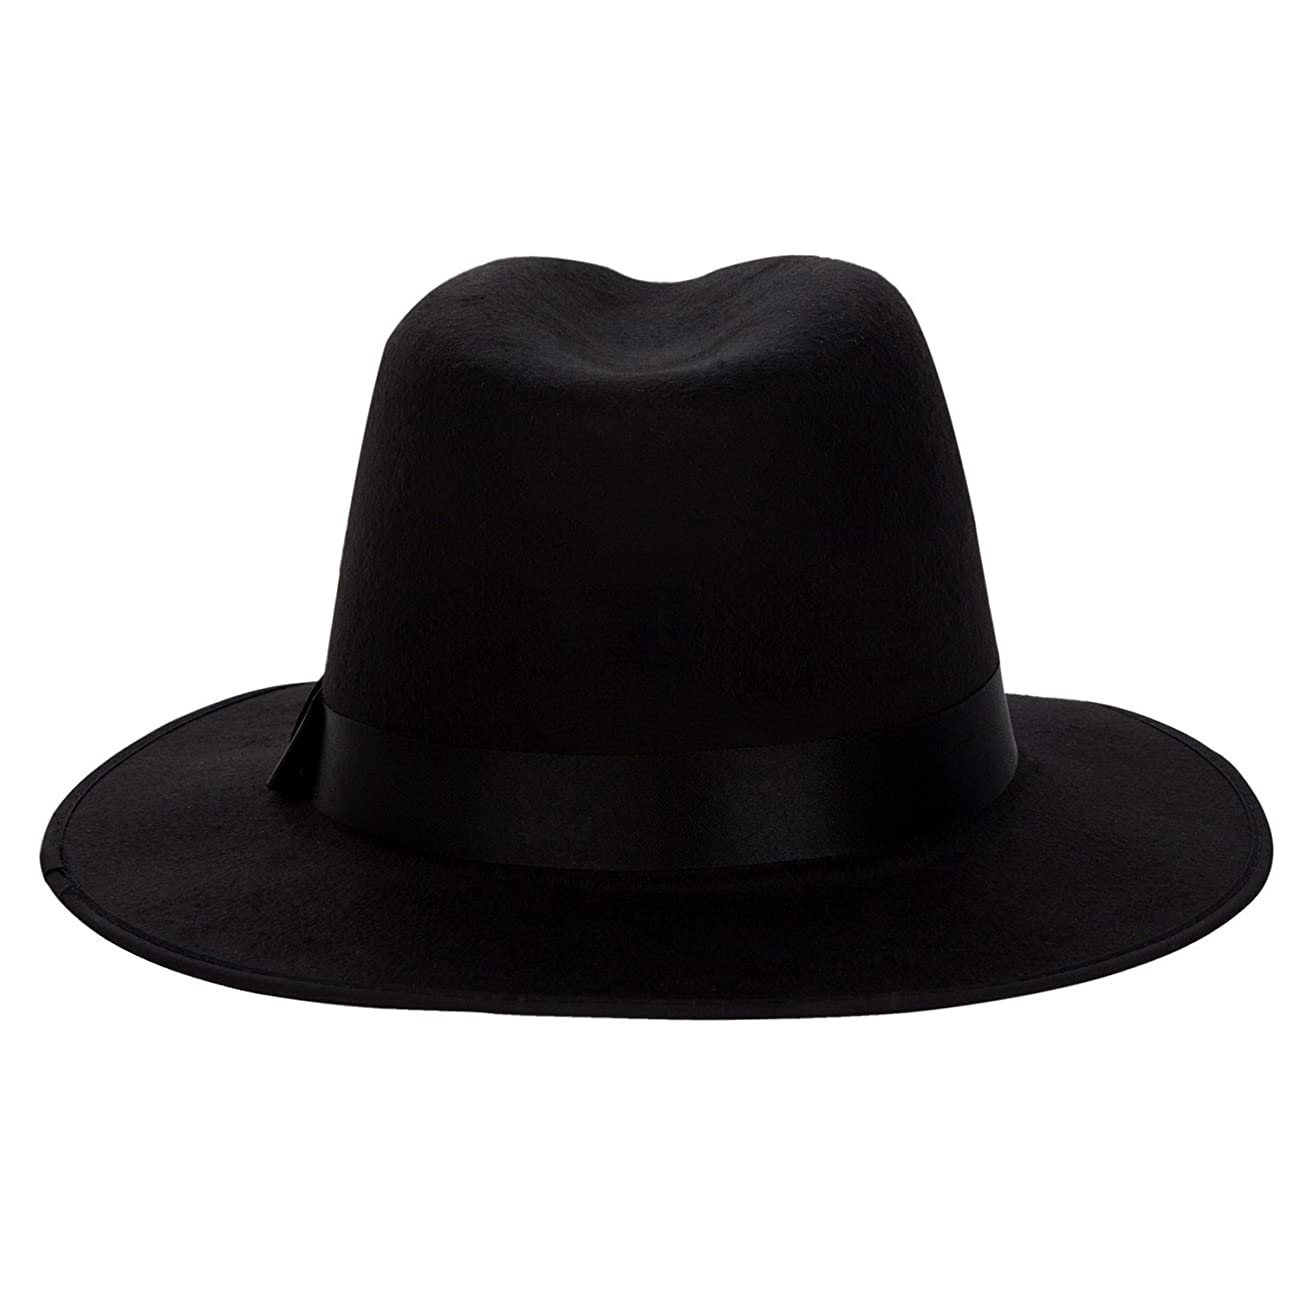 Aerusi Men's Vintage Wide Brim Hard Felt Fedora Panama Hat with Bowknot Black Ribbon 2